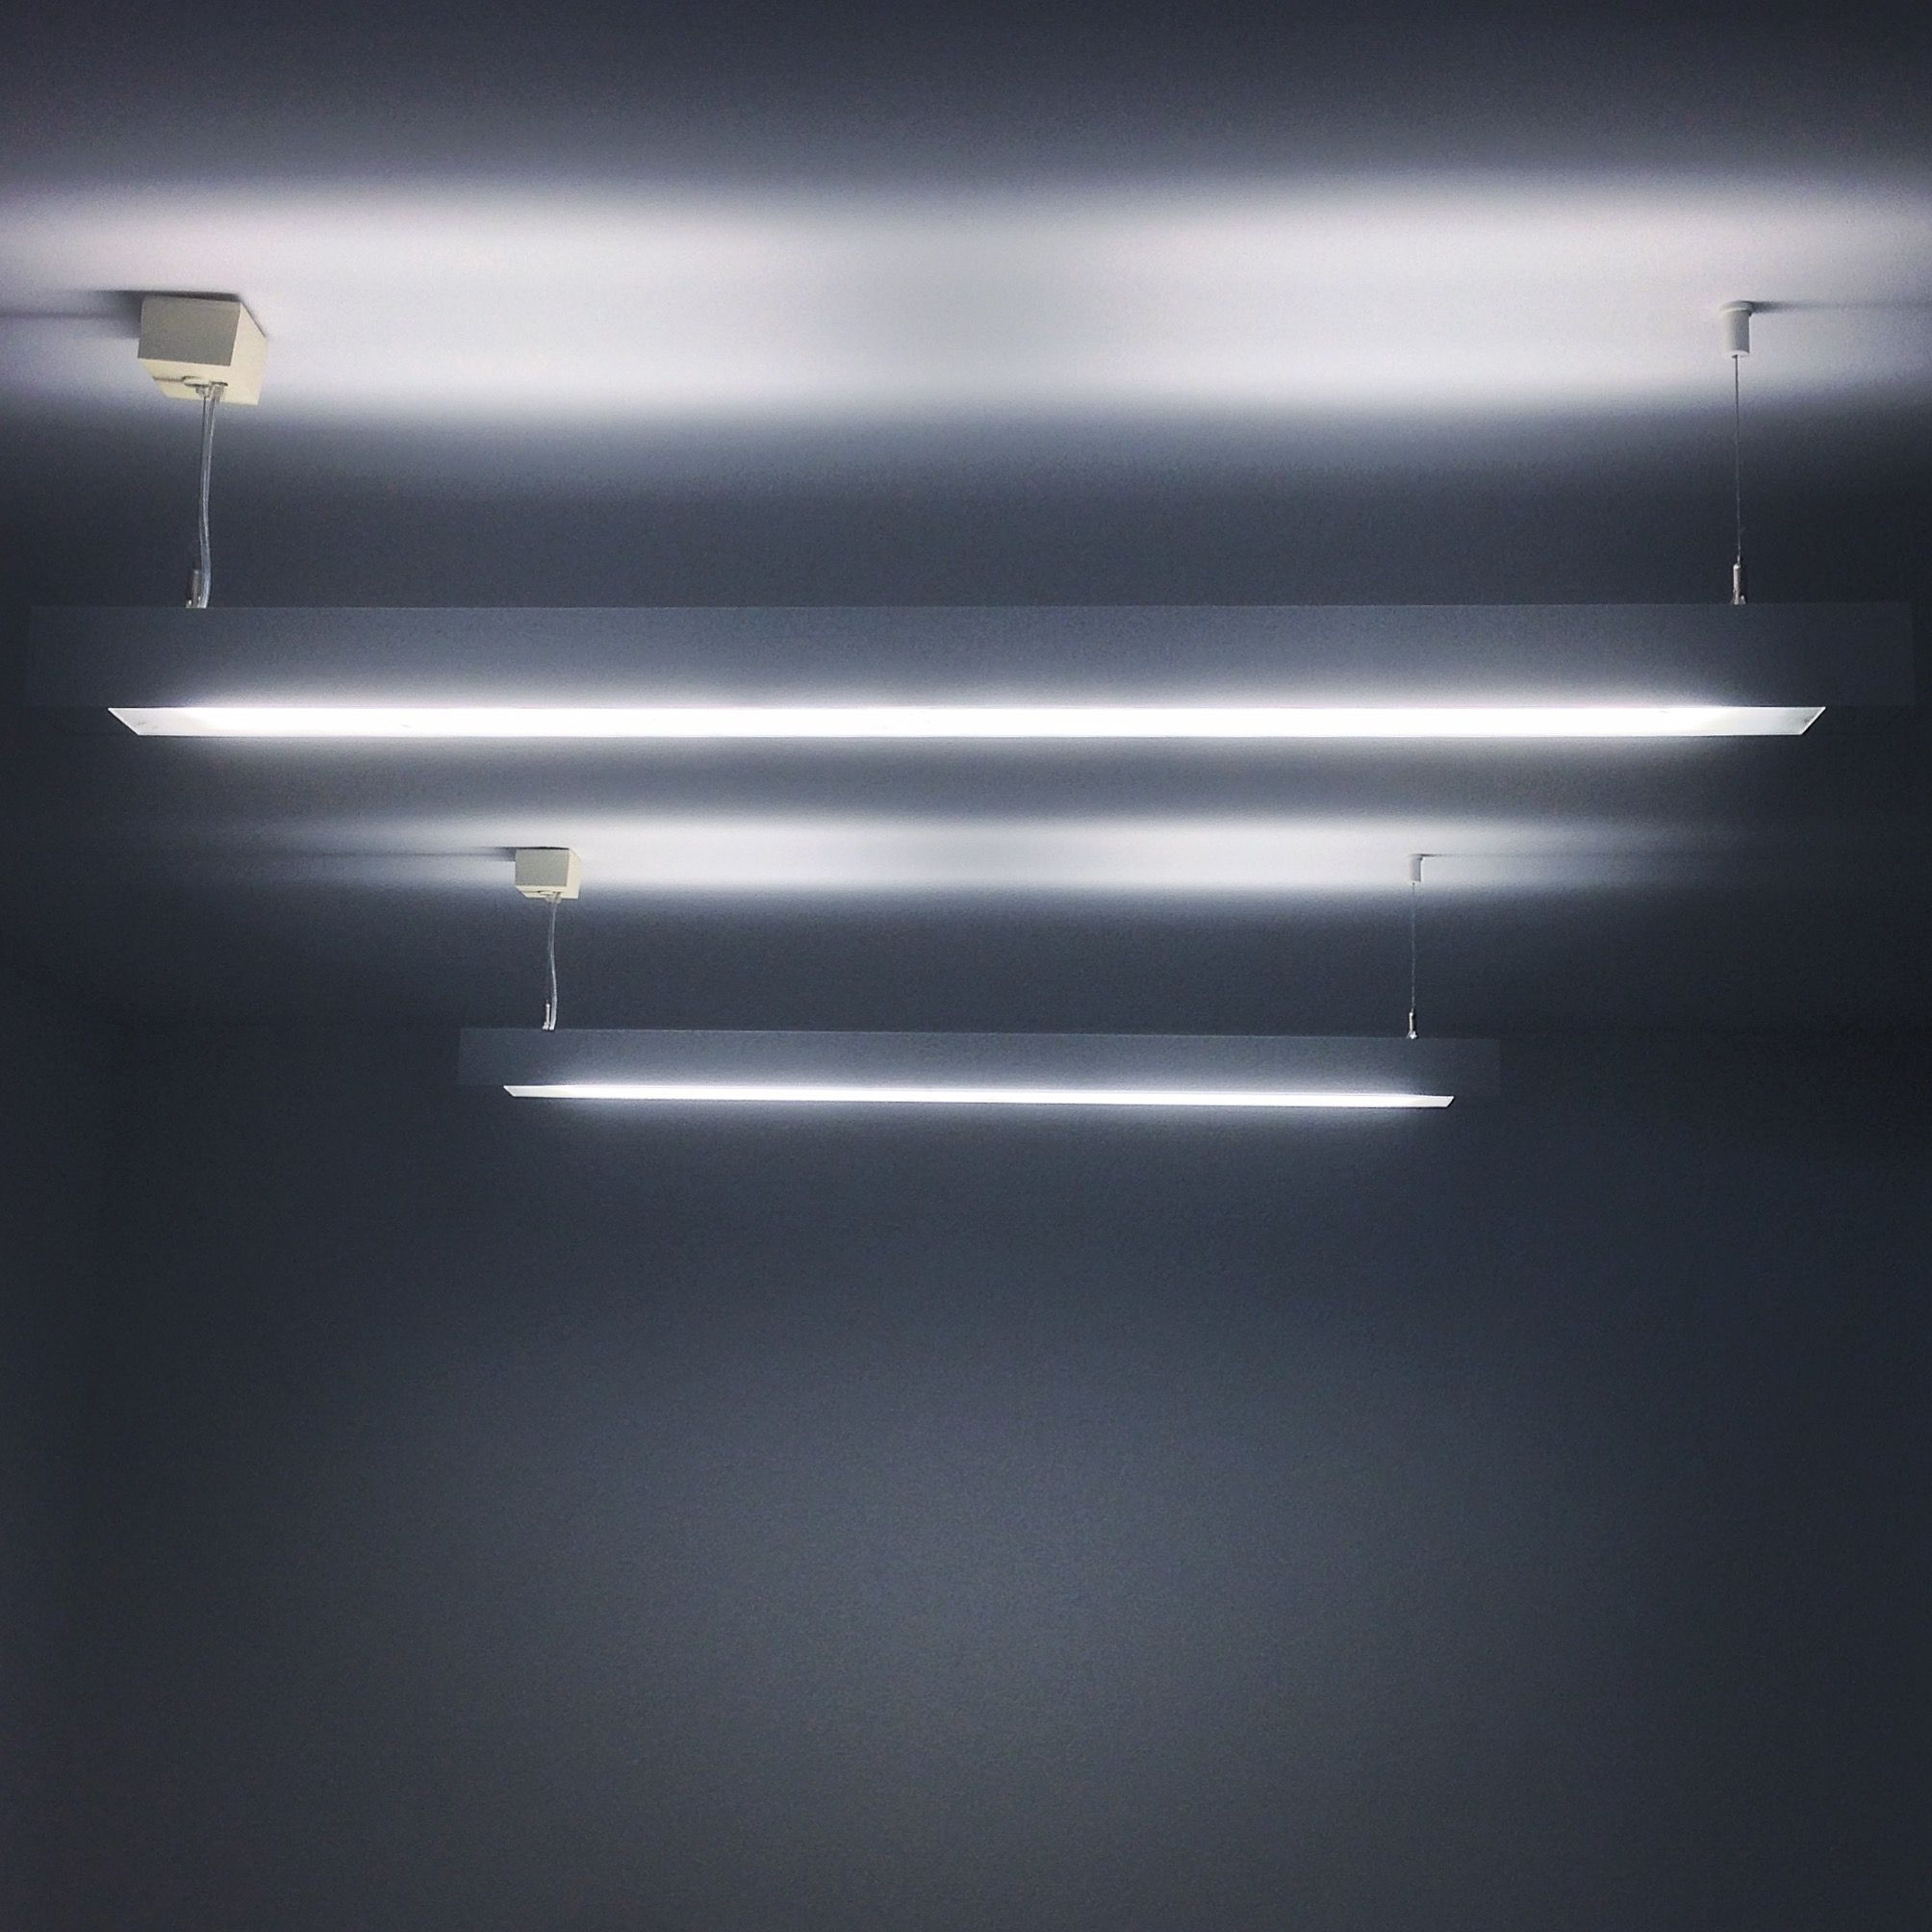 Fluorescent Light Fixture Flickering: Here's What To Do When A Ballast Needs Changing